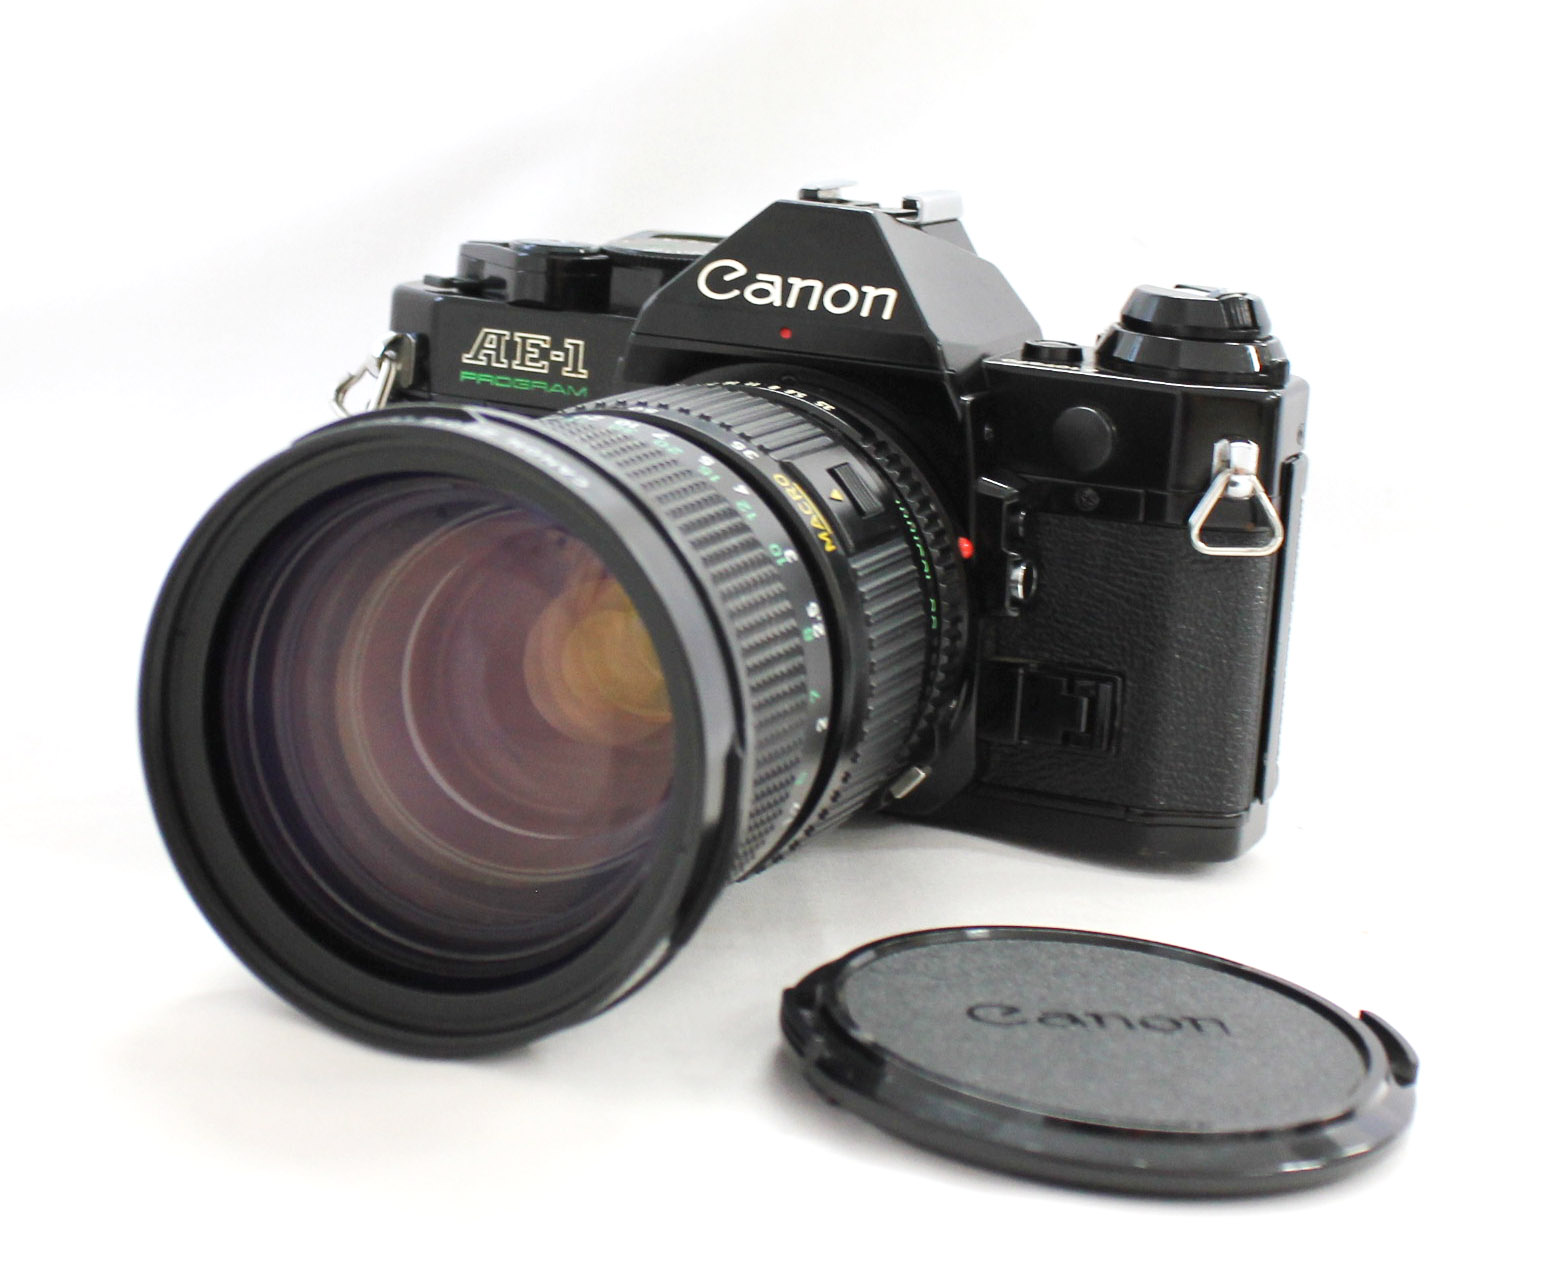 [Exc++++] Canon AE-1 Program 35mm SLR Film Camera with New FD 35-105mm F/3.5 Zoom Lens from Japan